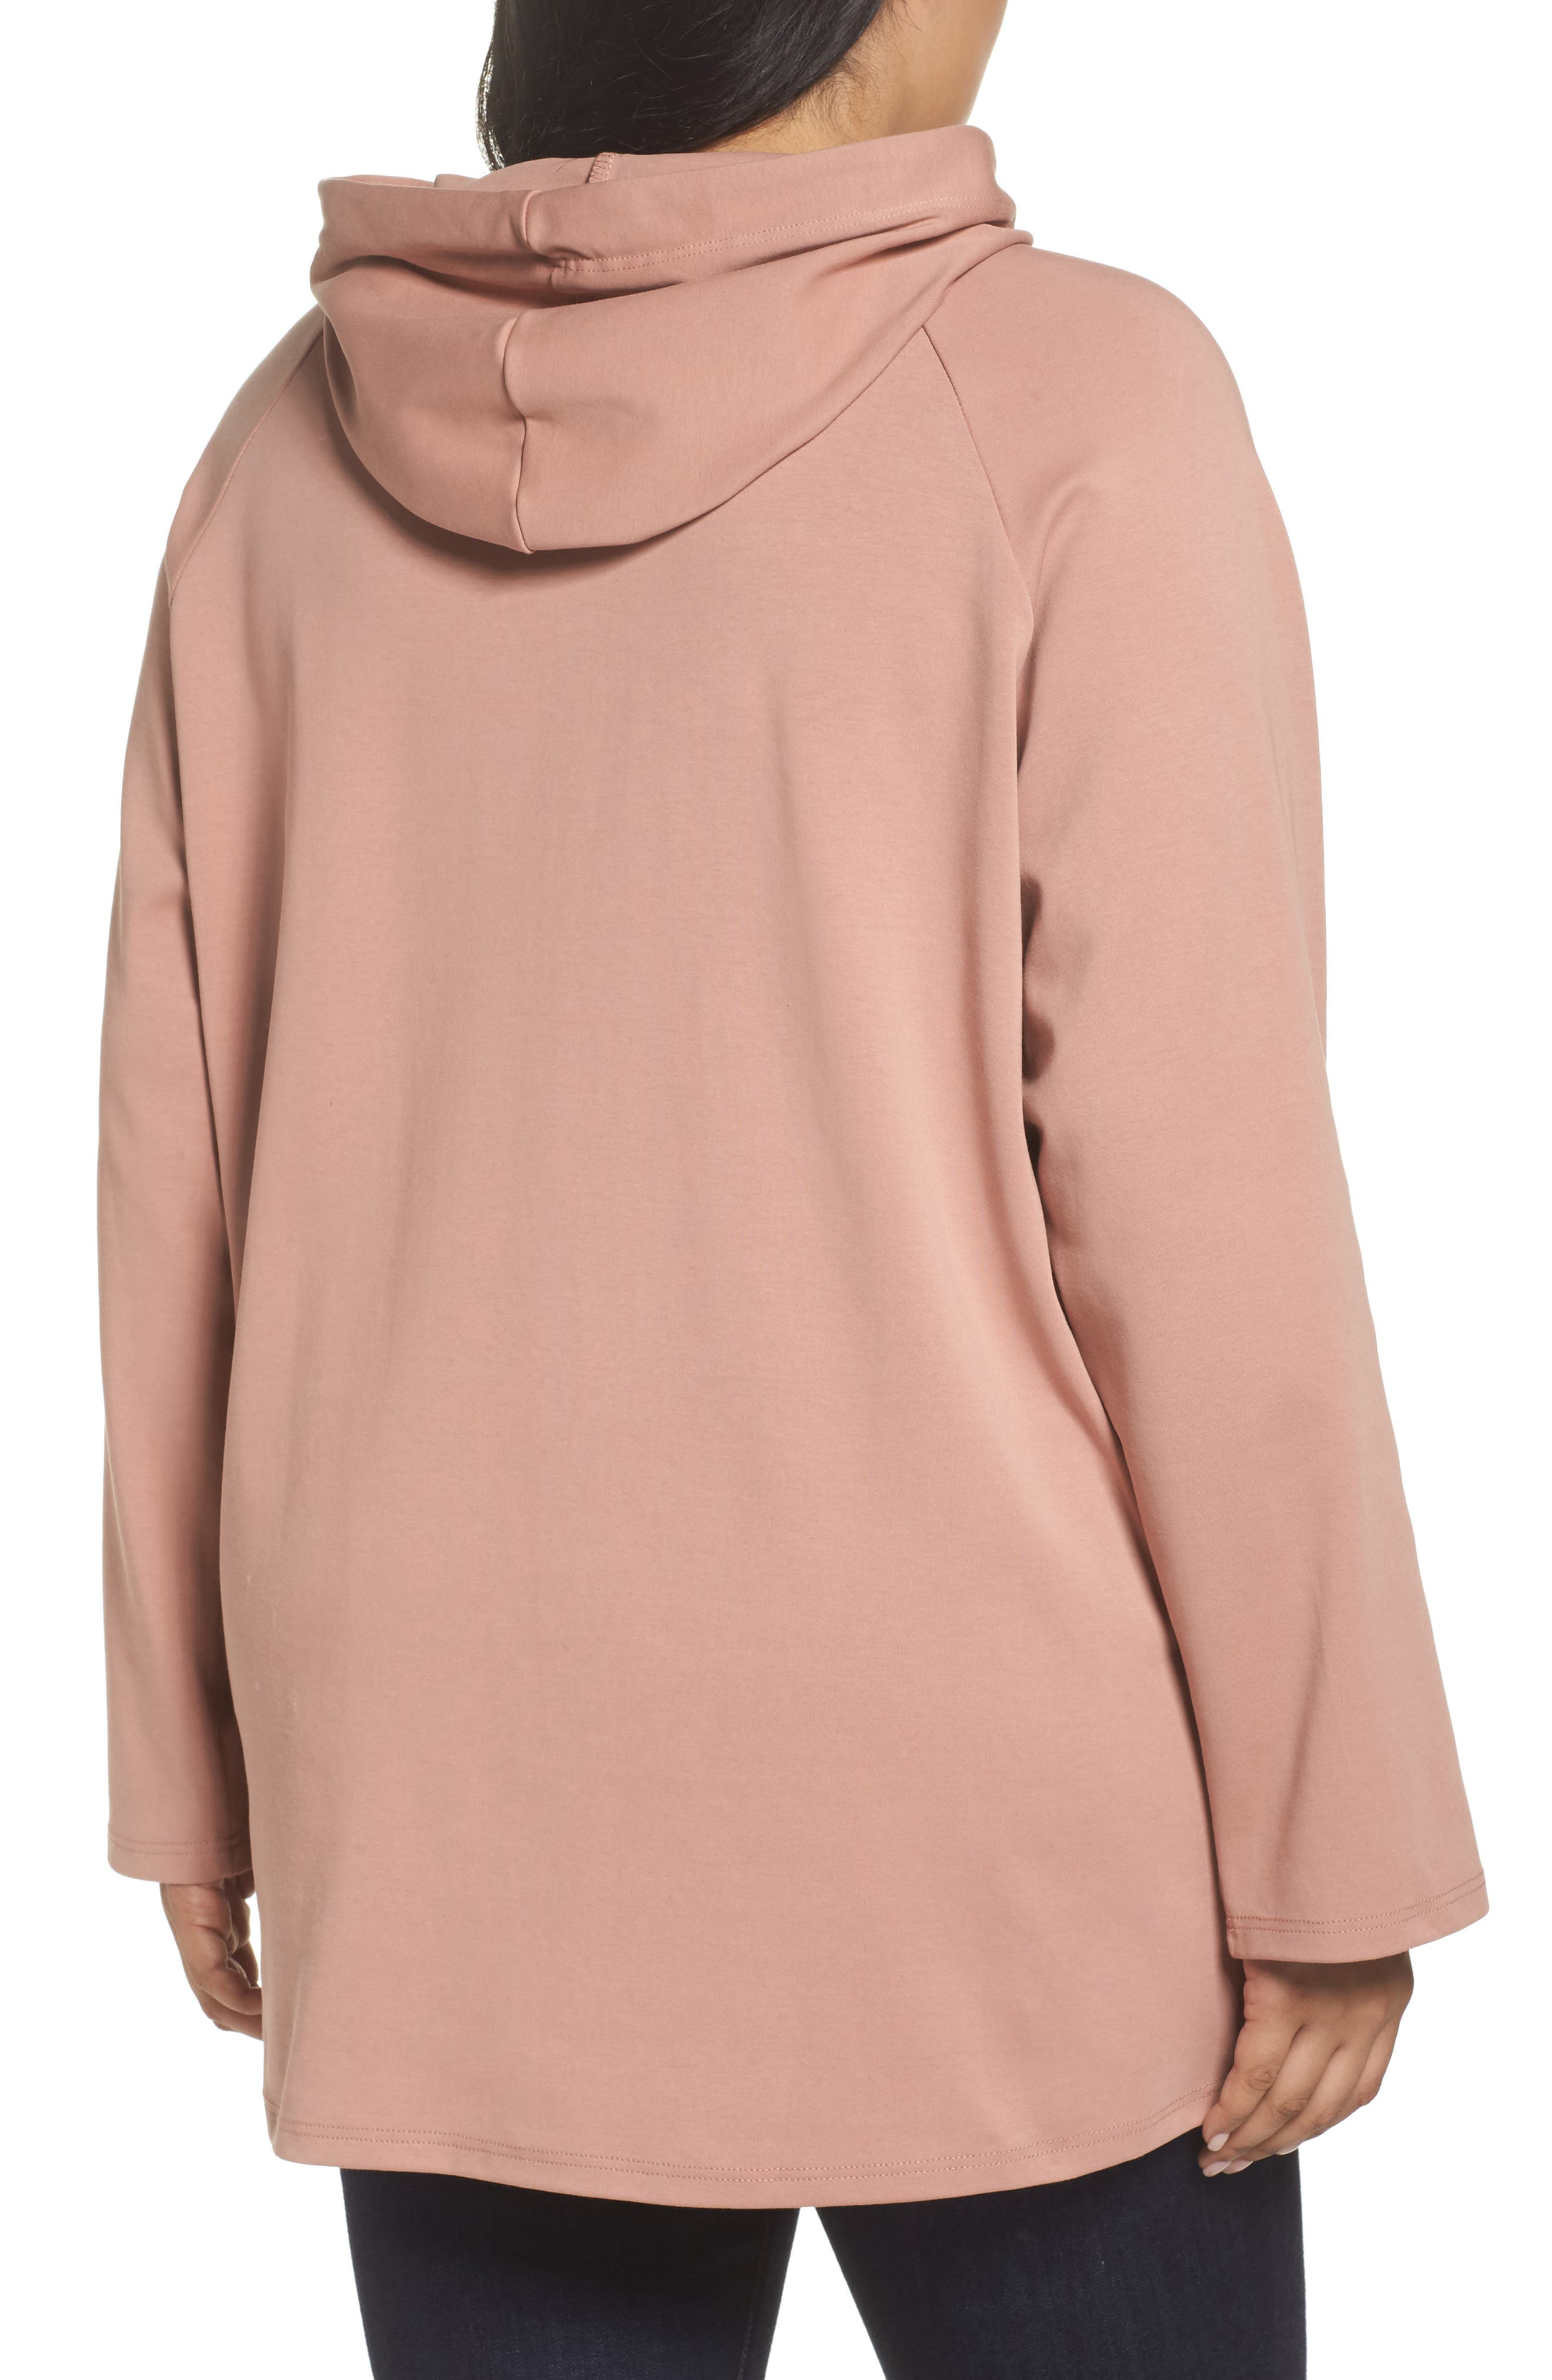 Hoodie Tunic,                             Alternate thumbnail 2, color,                             660